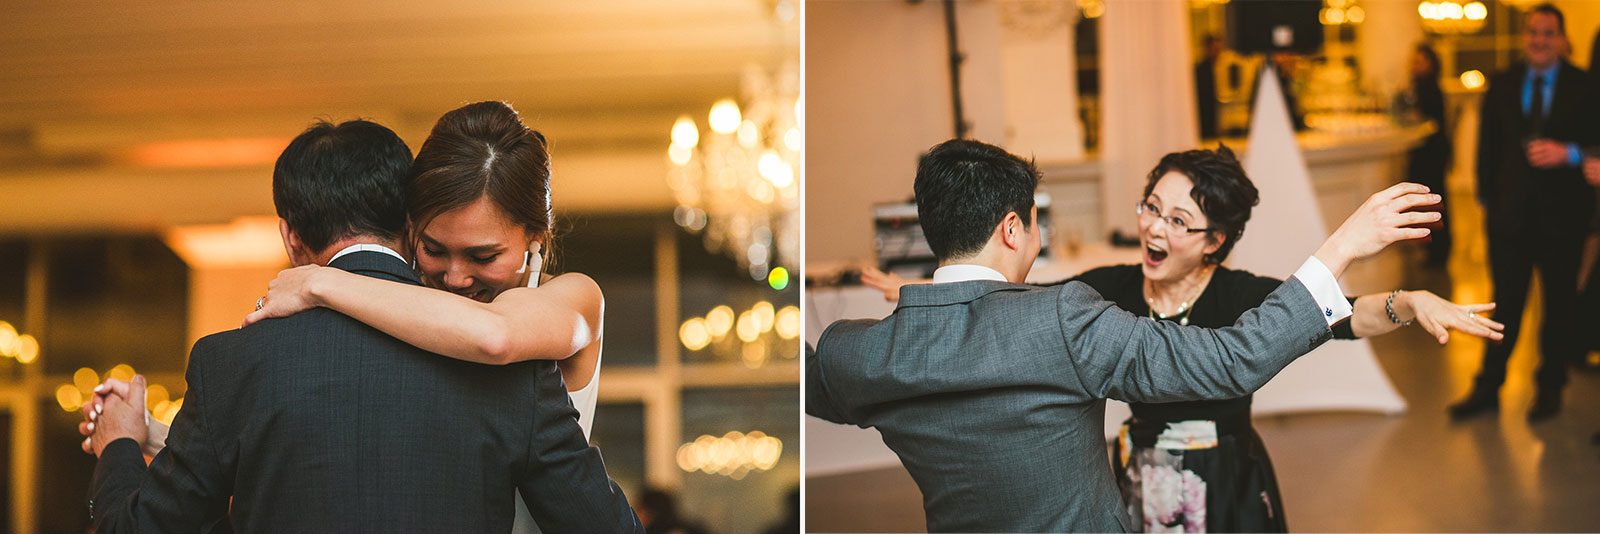 38 wedding reception at room 1520 - Rebecca + Doha // Wedding Photos at Room 1520 Chicago